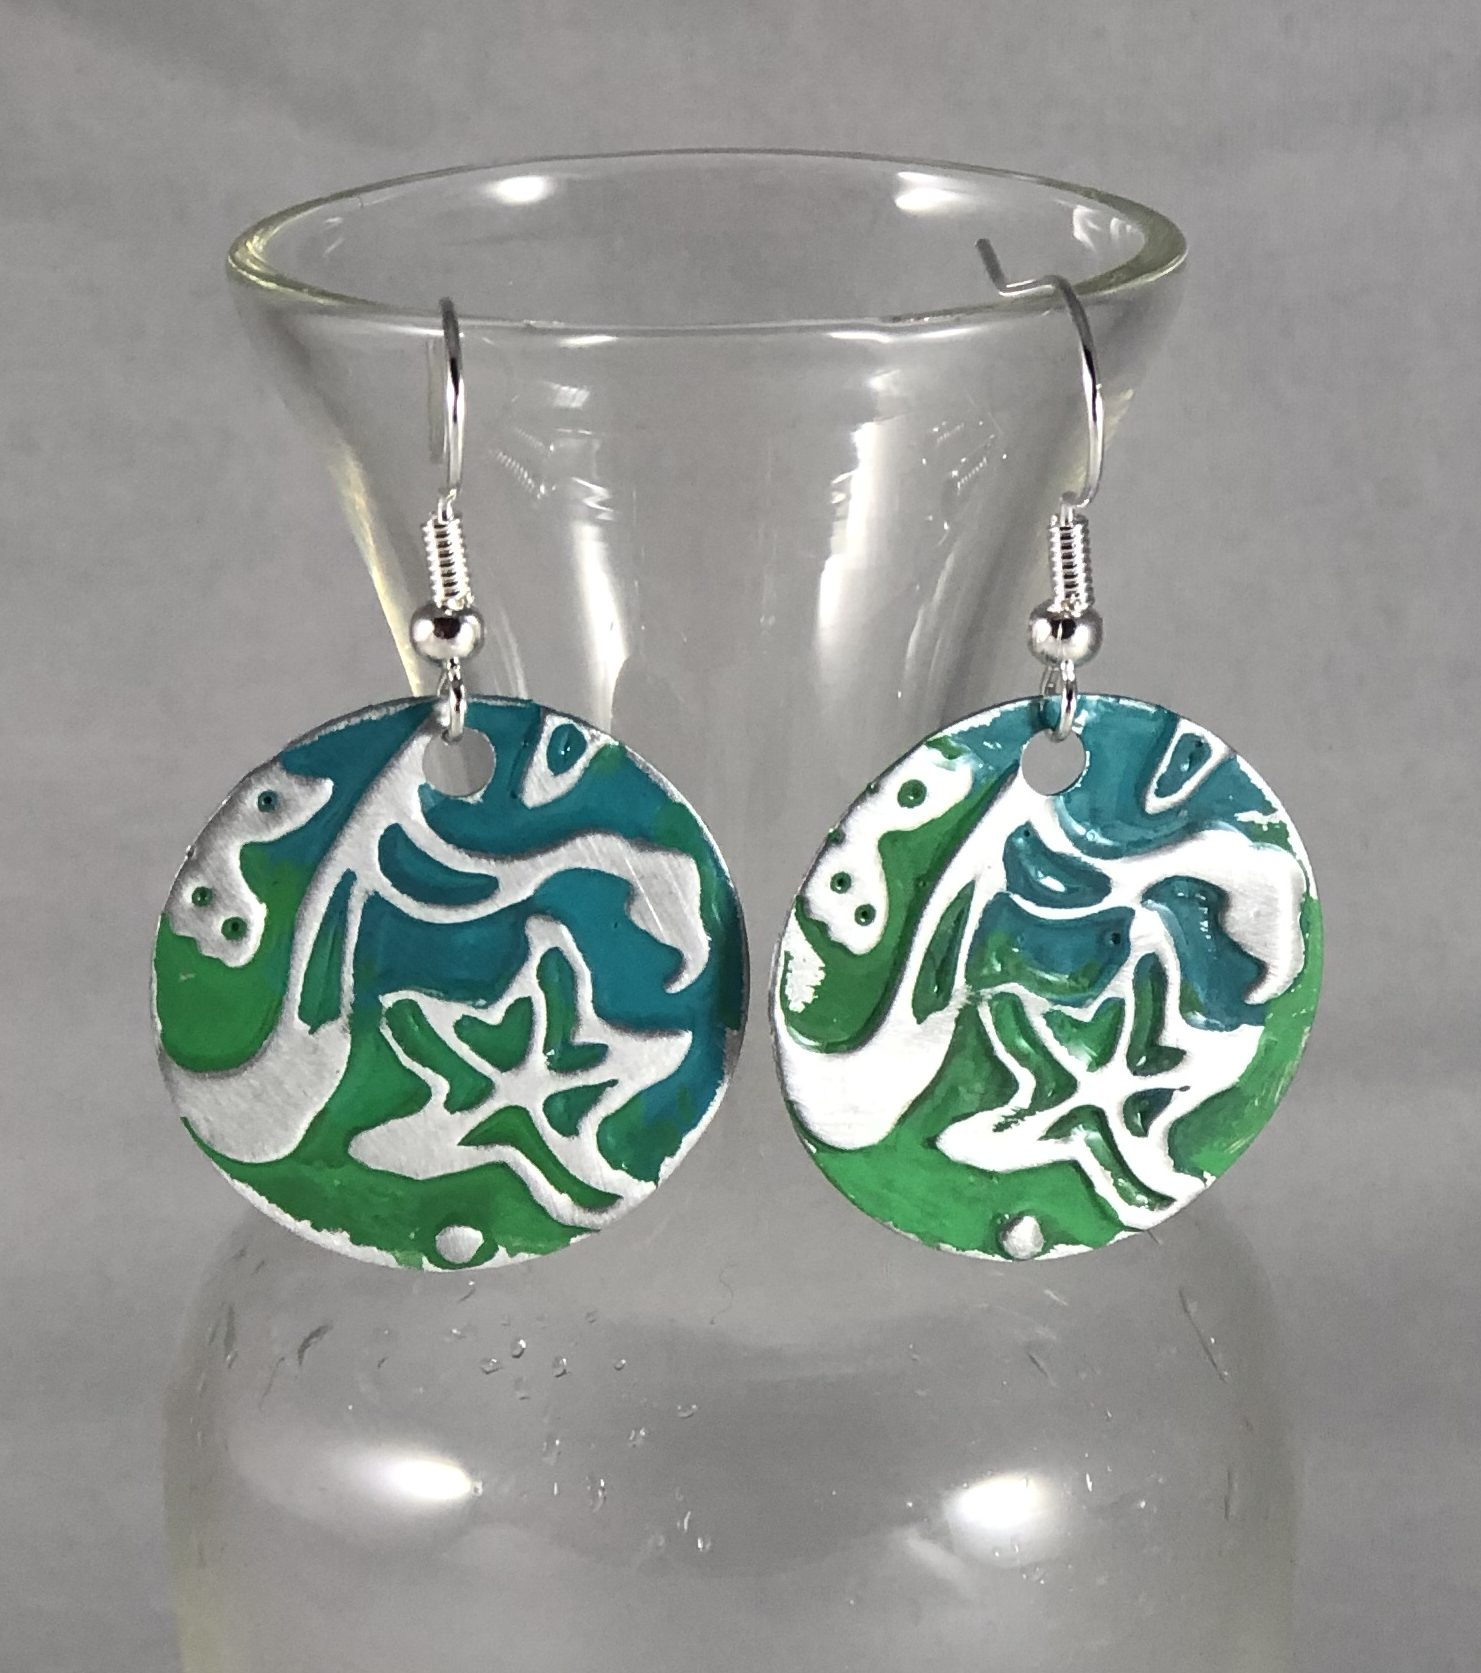 CC Star Grass Green Enamel Earrings Textured Copper with Vitreous Enamel and Silver Ear Wires